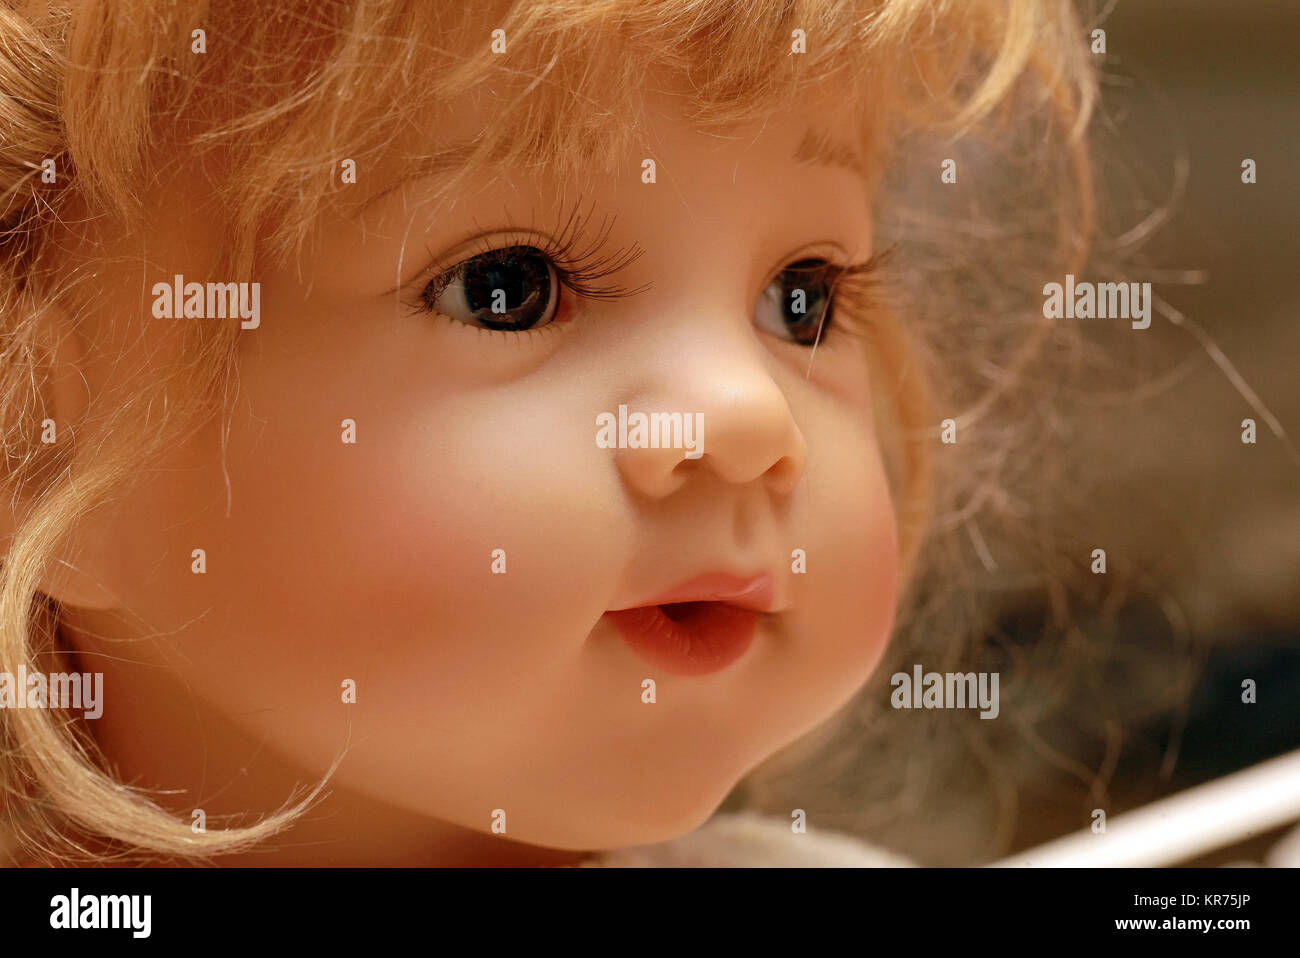 Baby Doll Face Stock Photos Baby Doll Face Stock Images Alamy